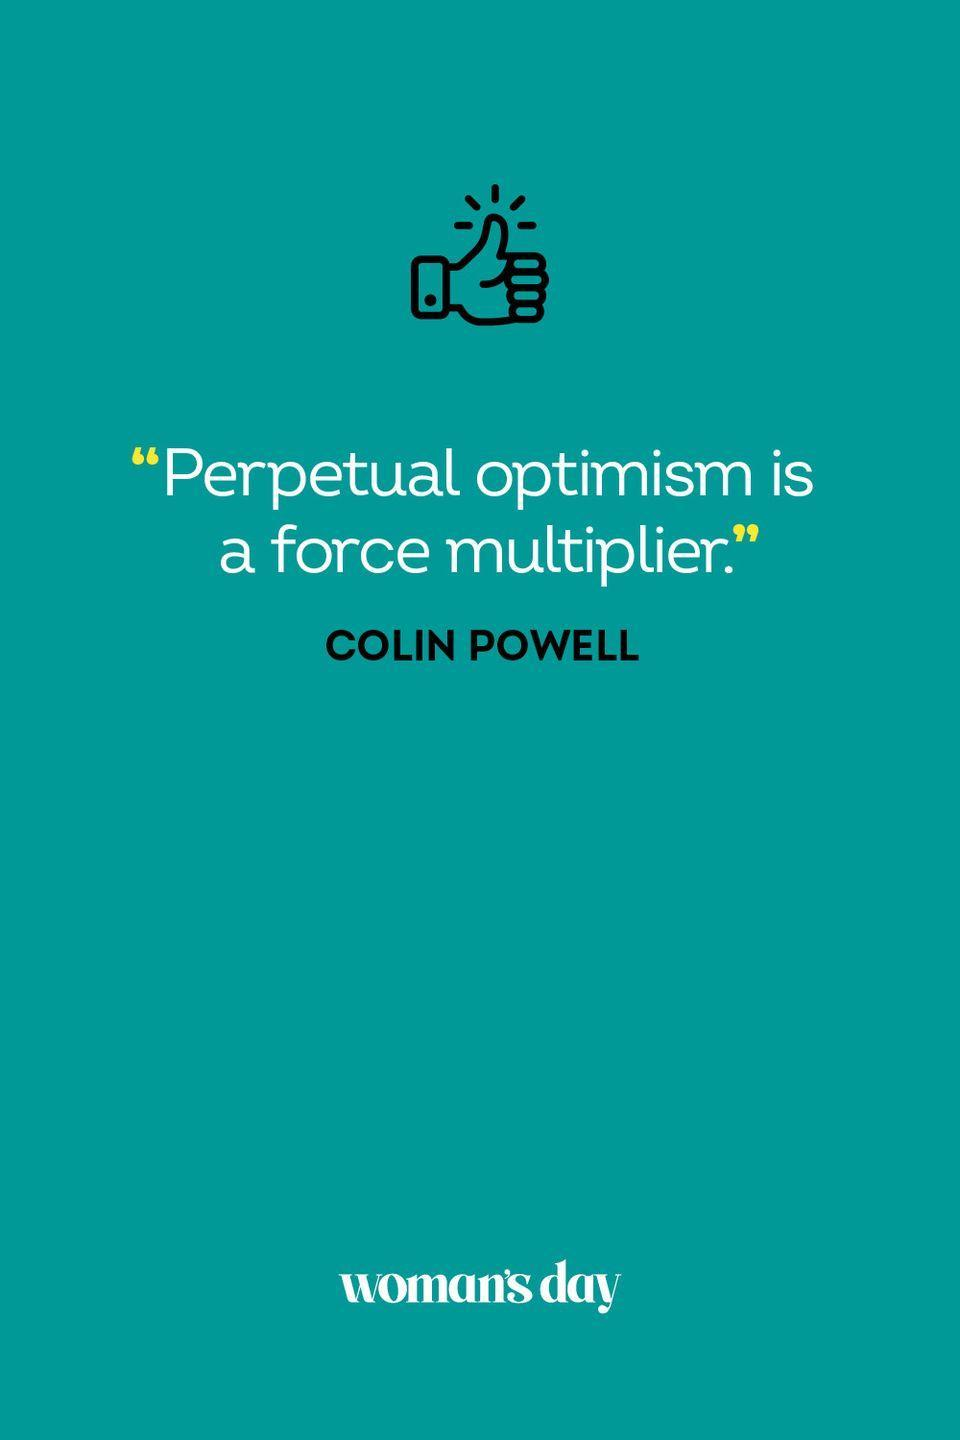 <p>Perpetual optimism is a force multiplier.</p>